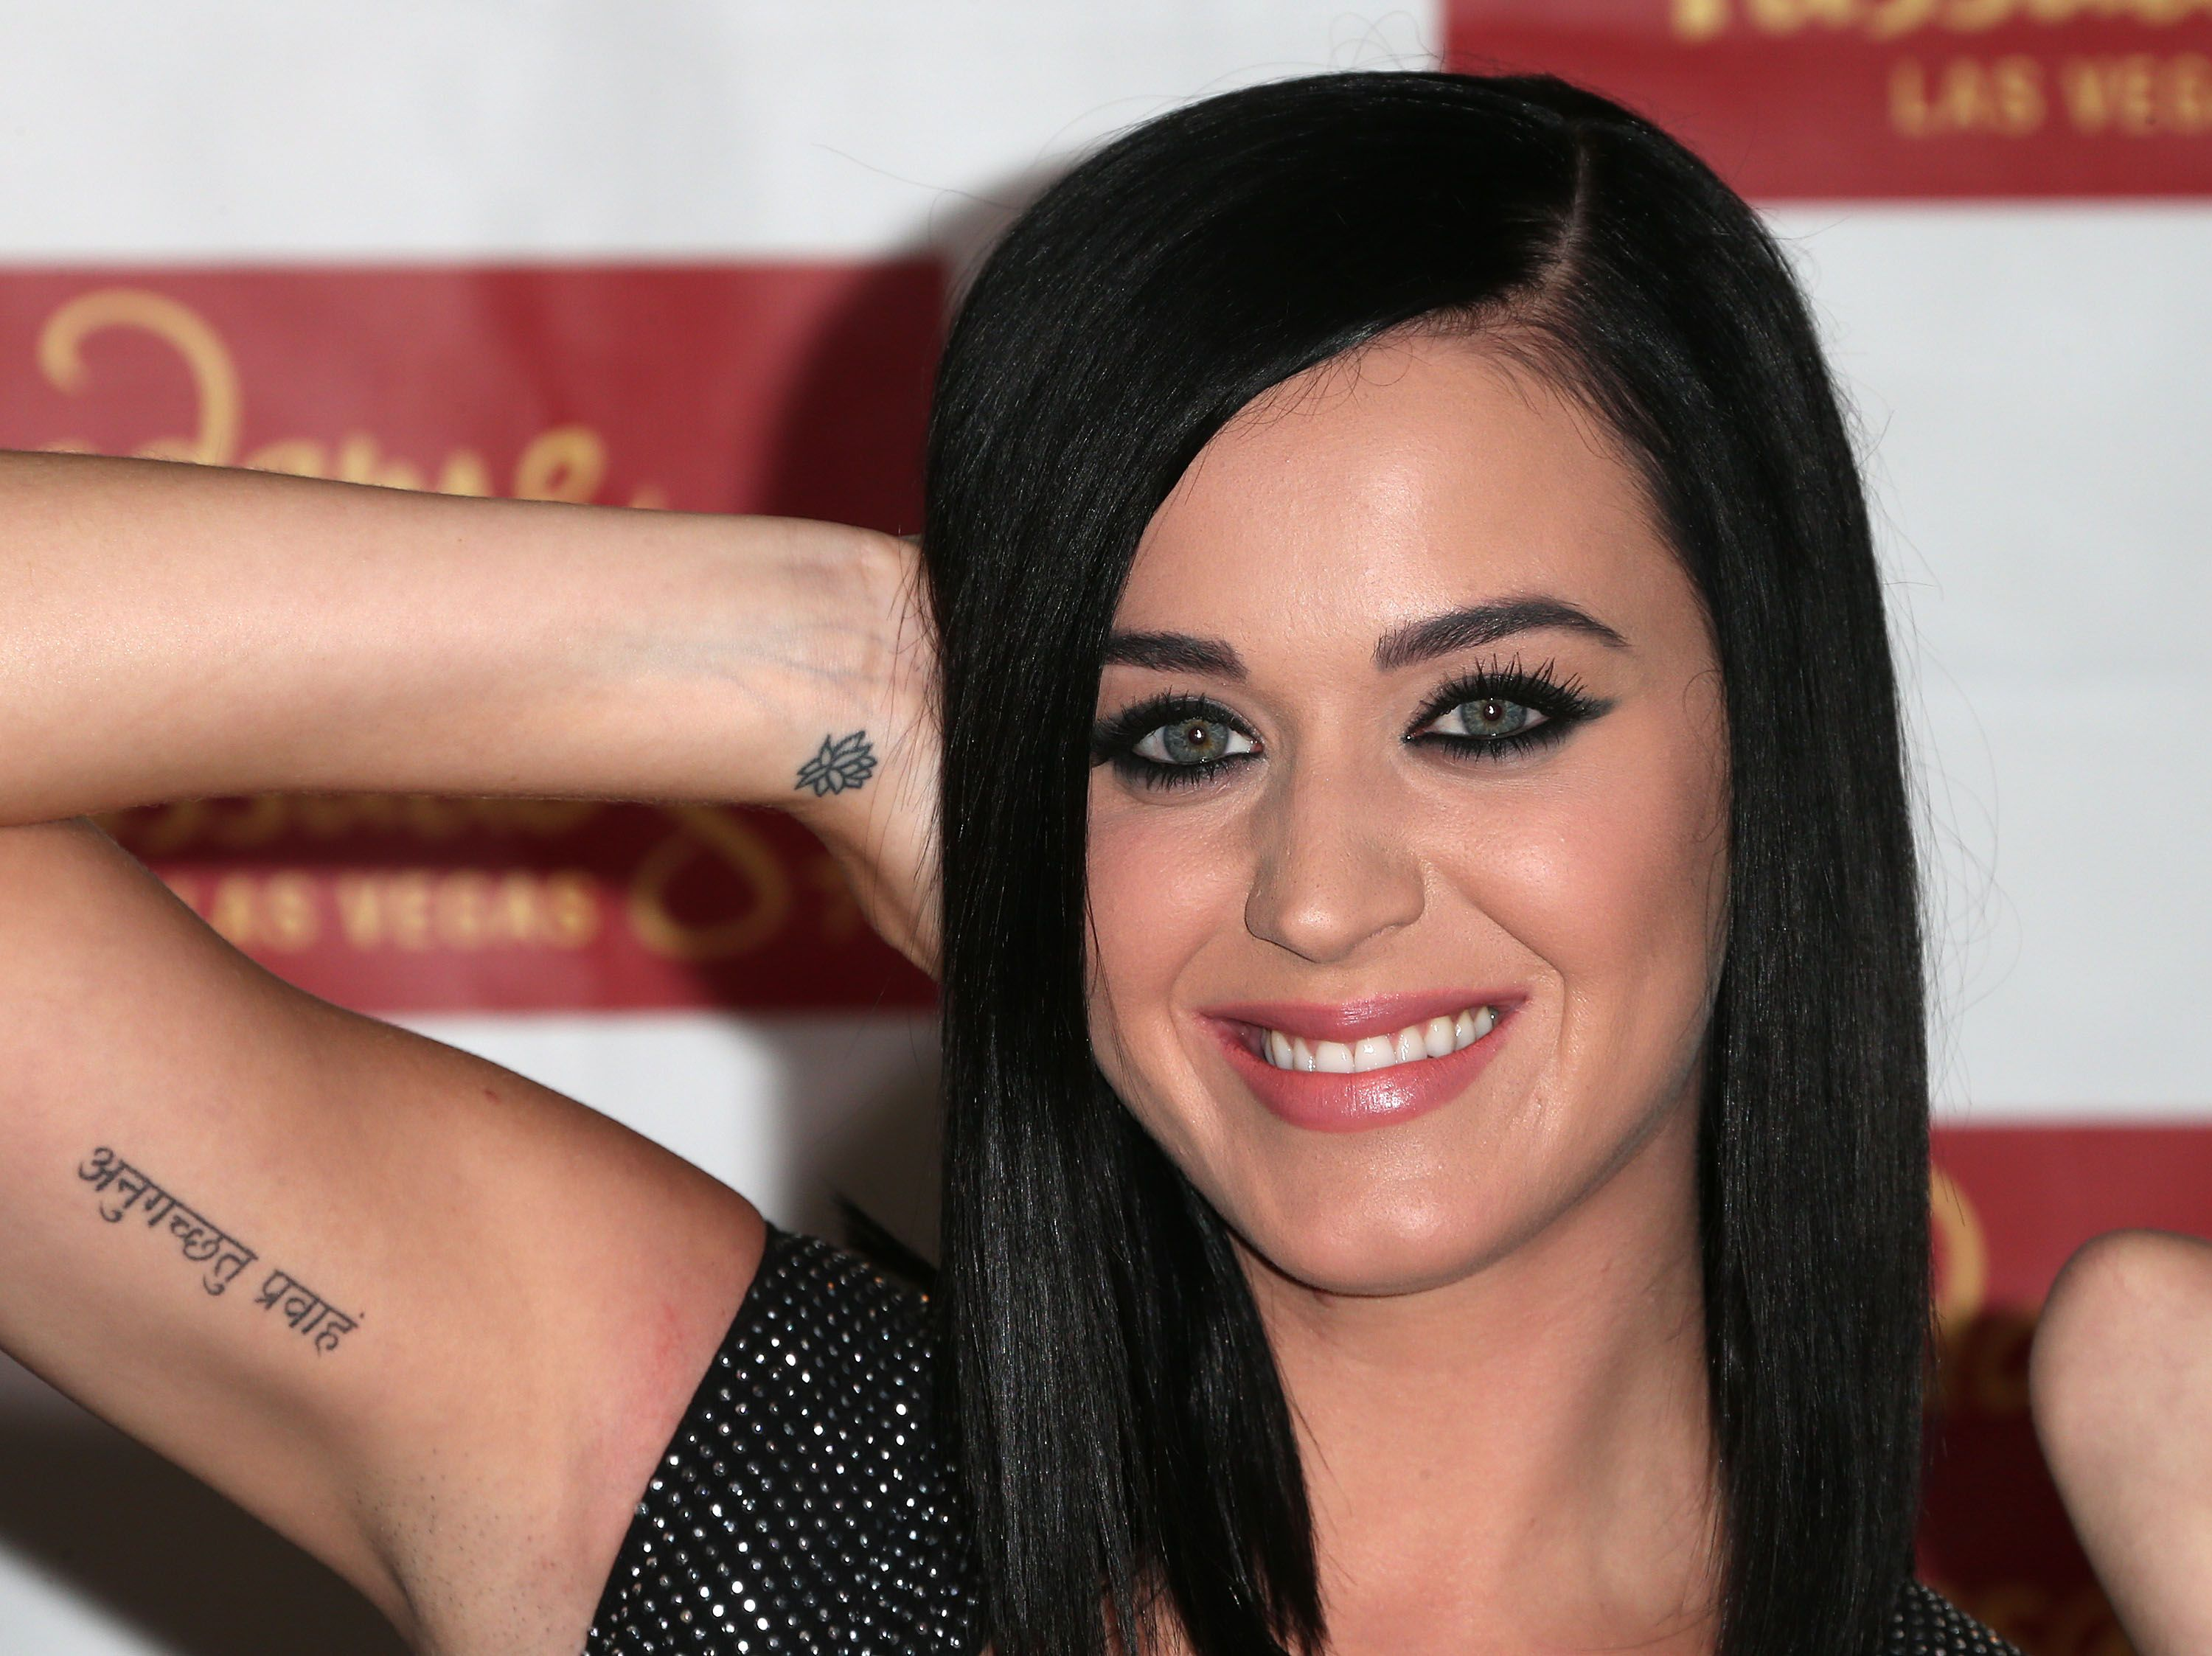 Katy Perry Unveils Her Wax Figure For Madame Tussauds' Las Vegas at Paramont Studios on January 26, 2013 in Hollywood, California. | Photo: Getty Images